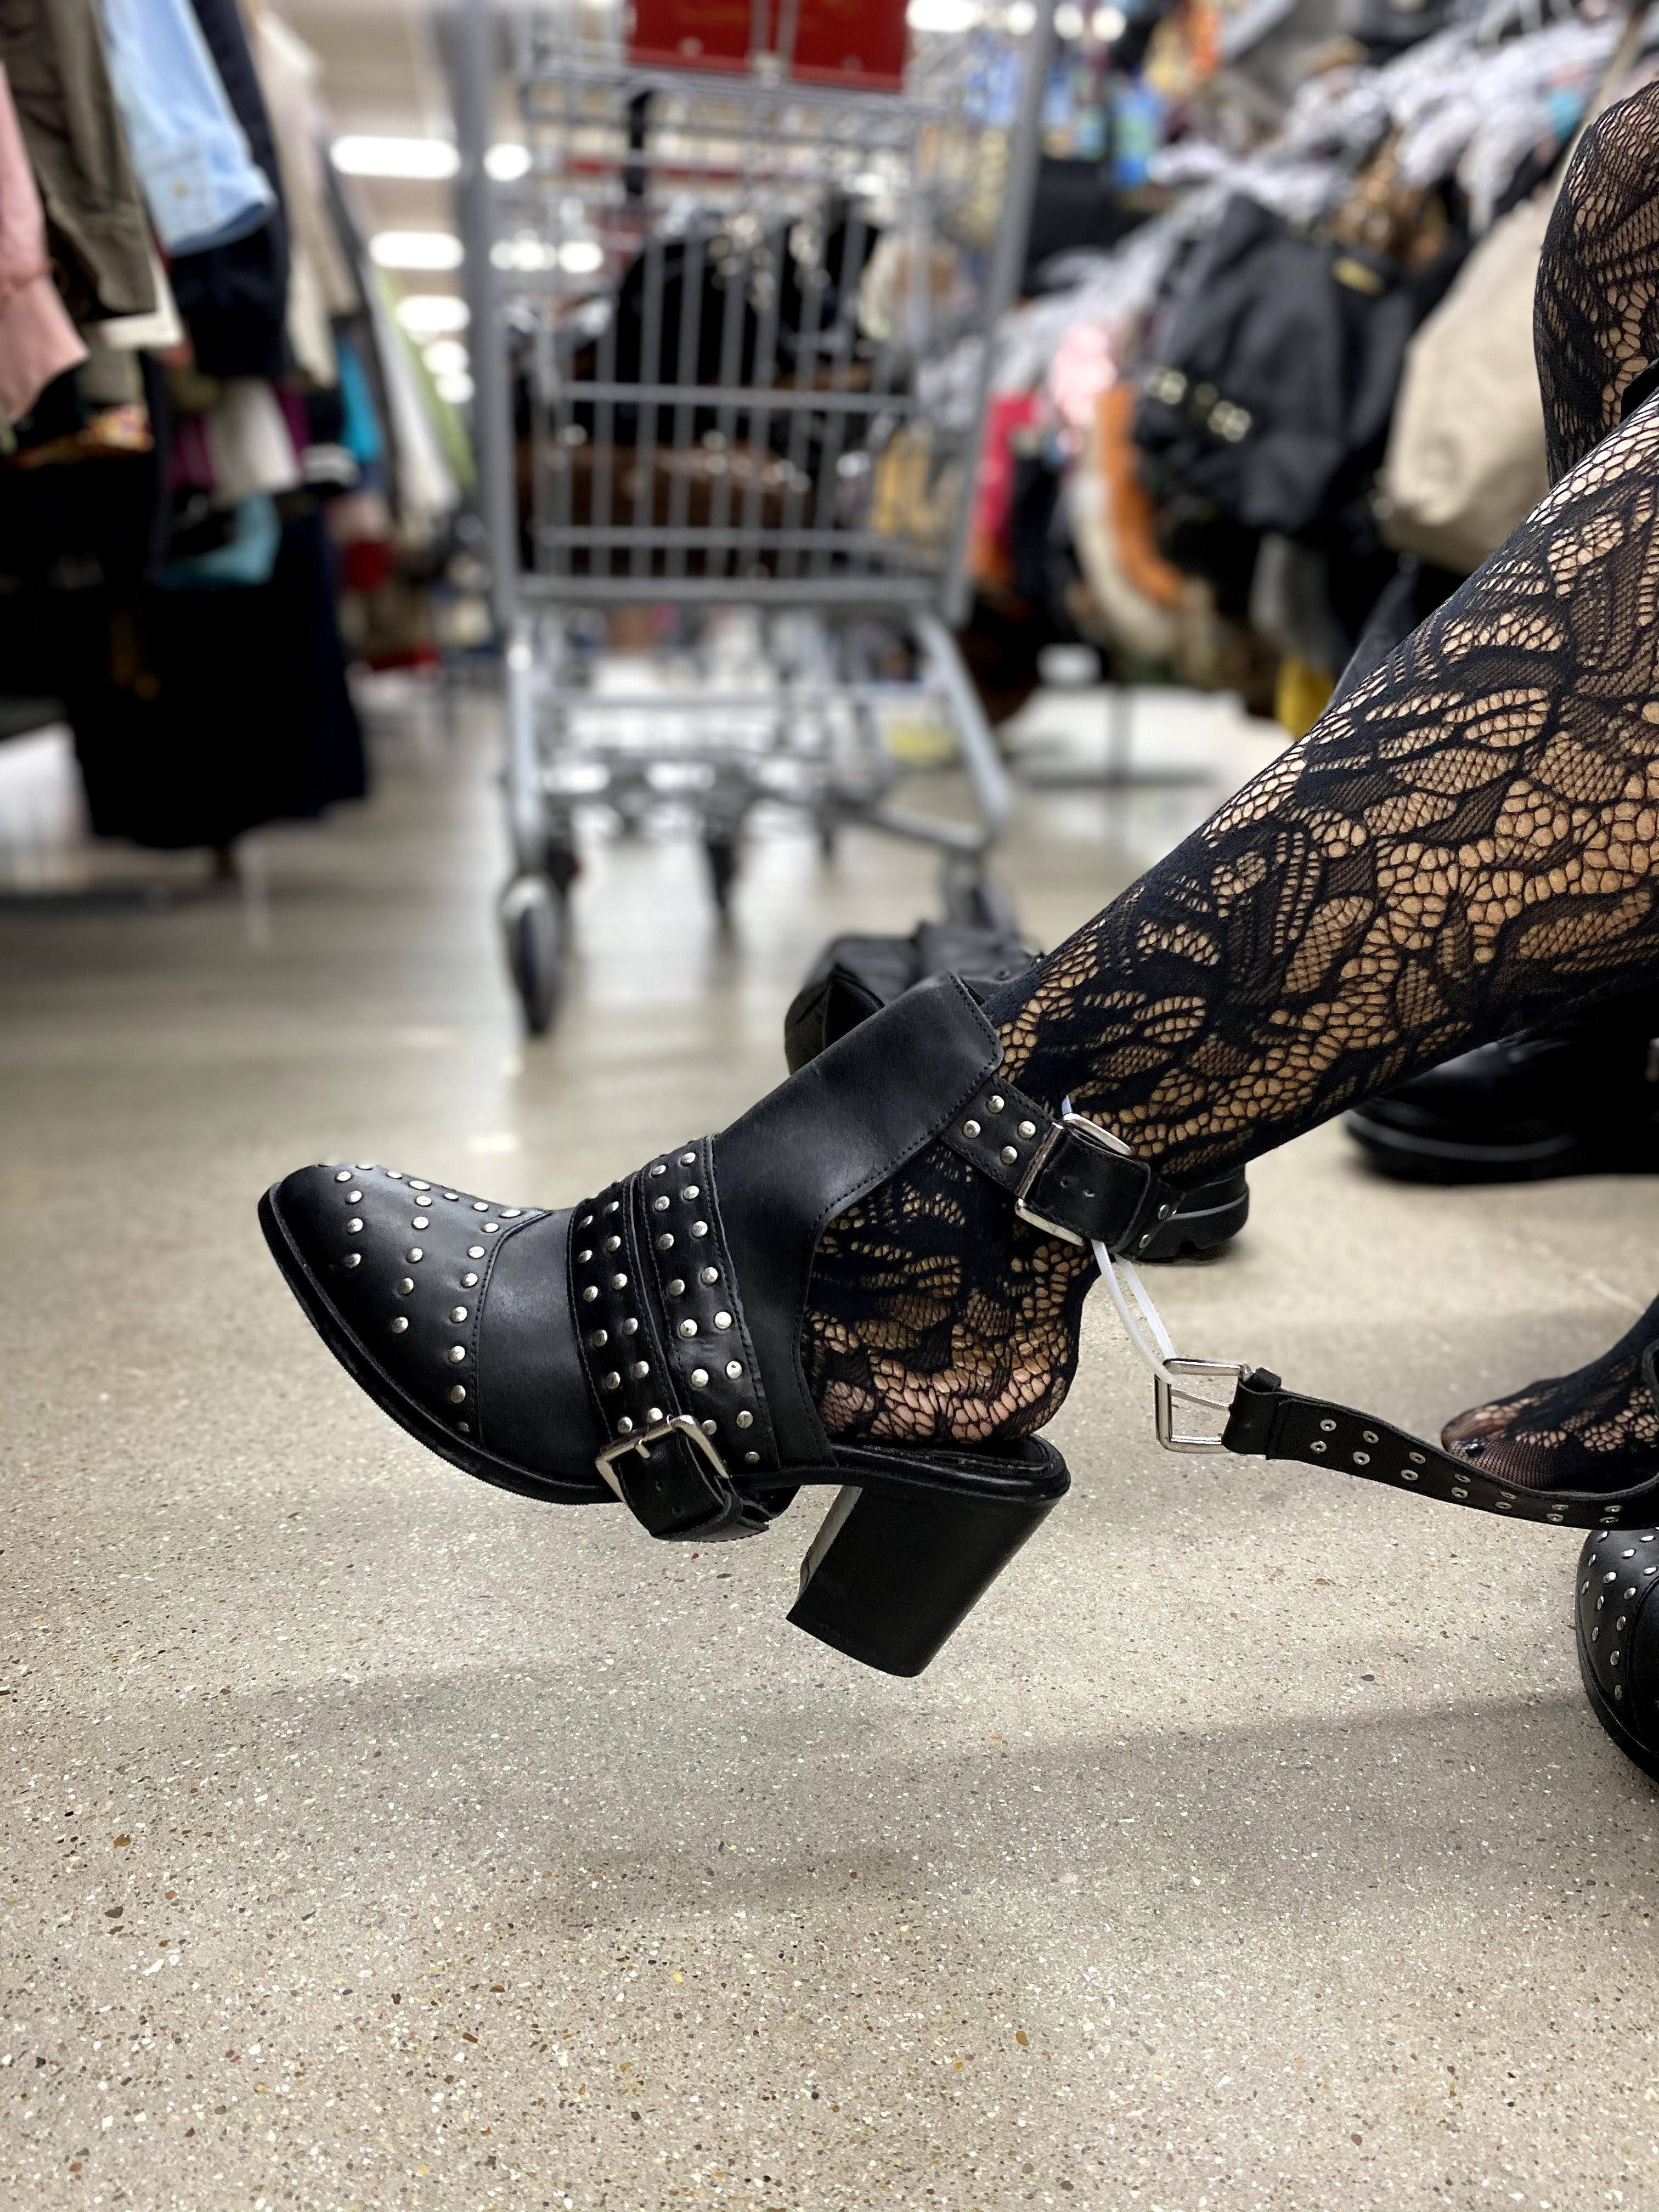 Woman showing off her thrift shoes from the vintage store.